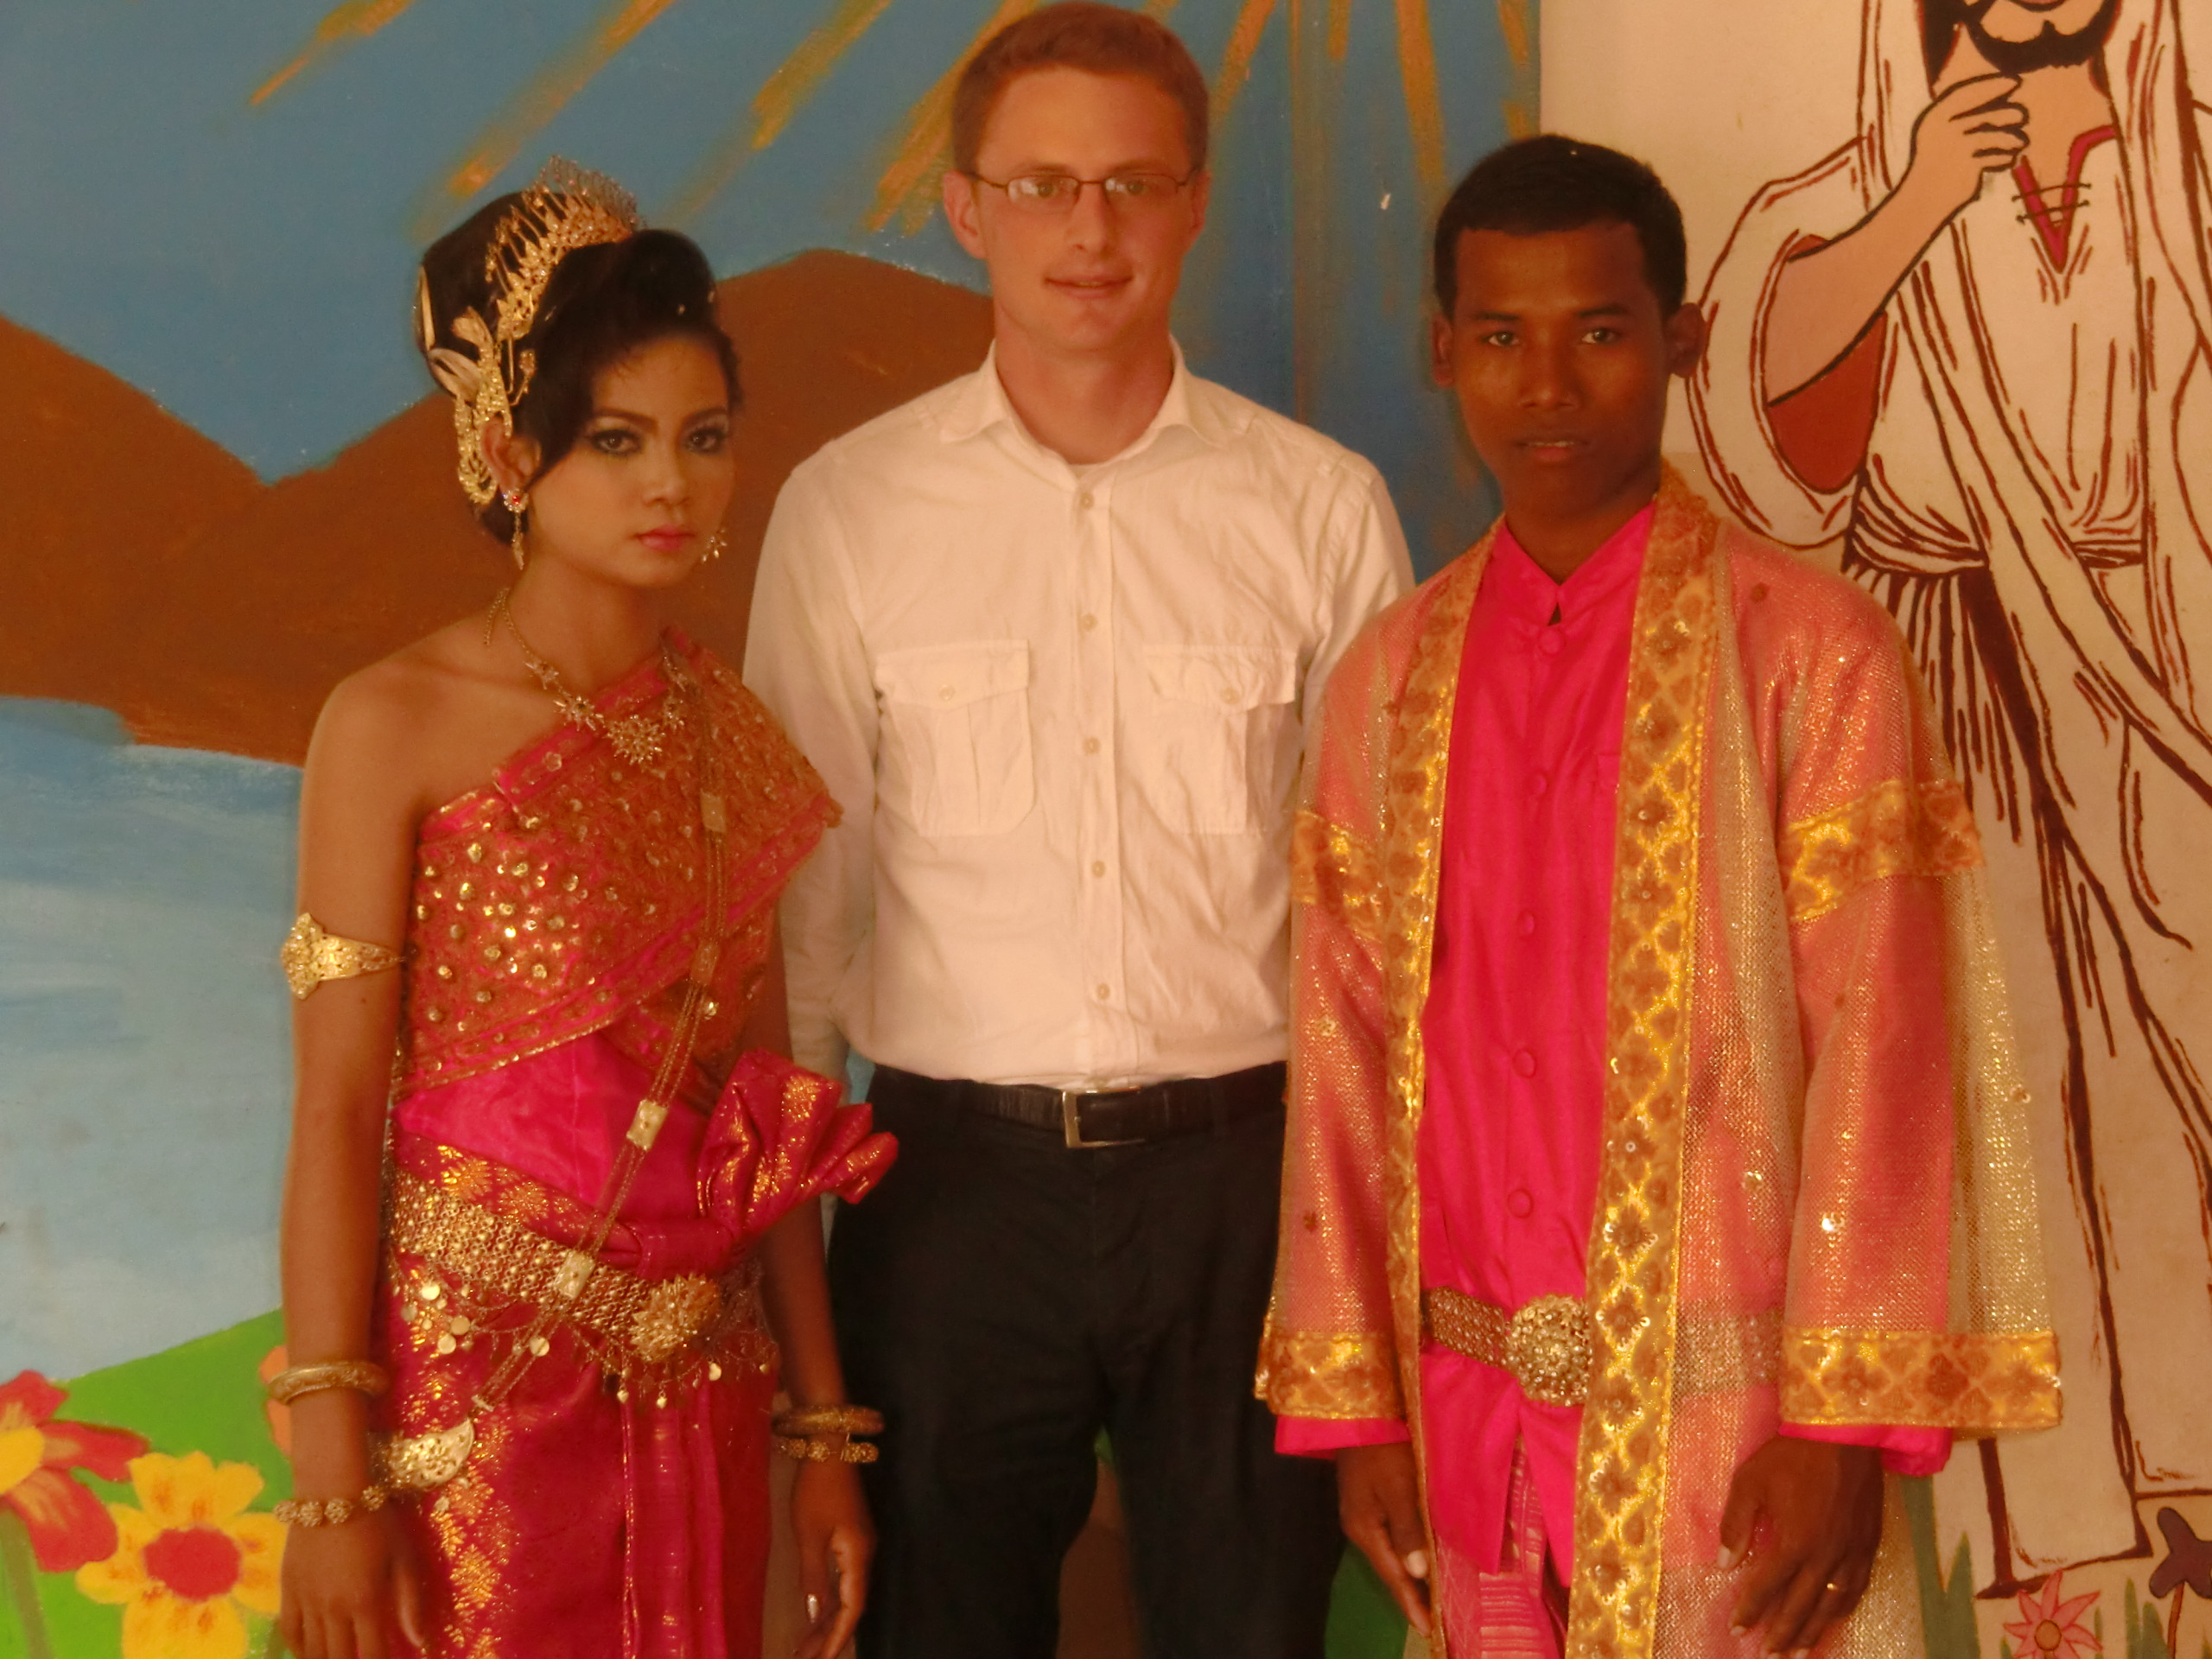 Khmer Wedding #1 | BARANG